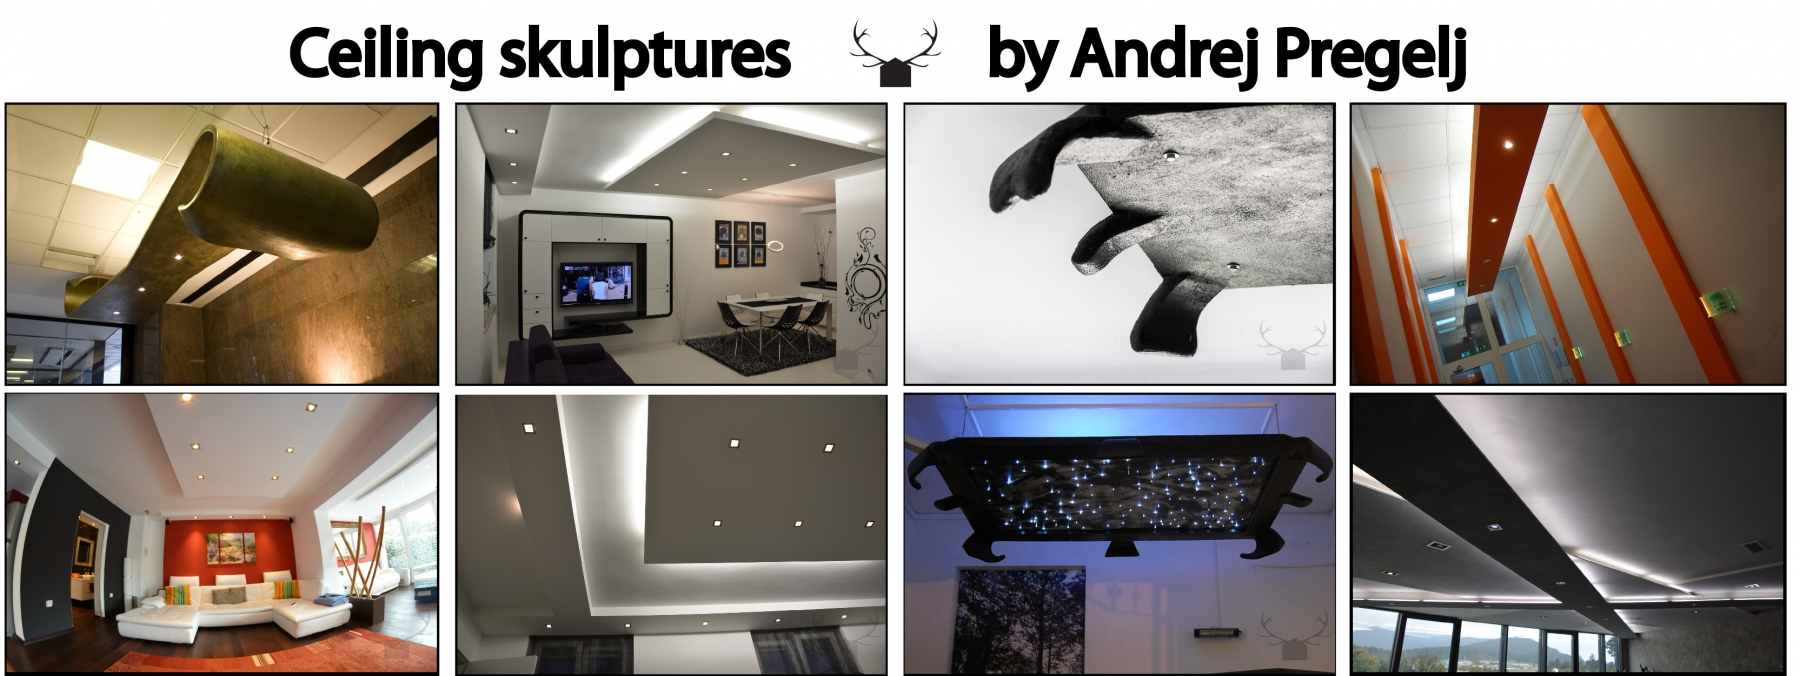 CEILING SCULPTURES by Andrej Pregelj